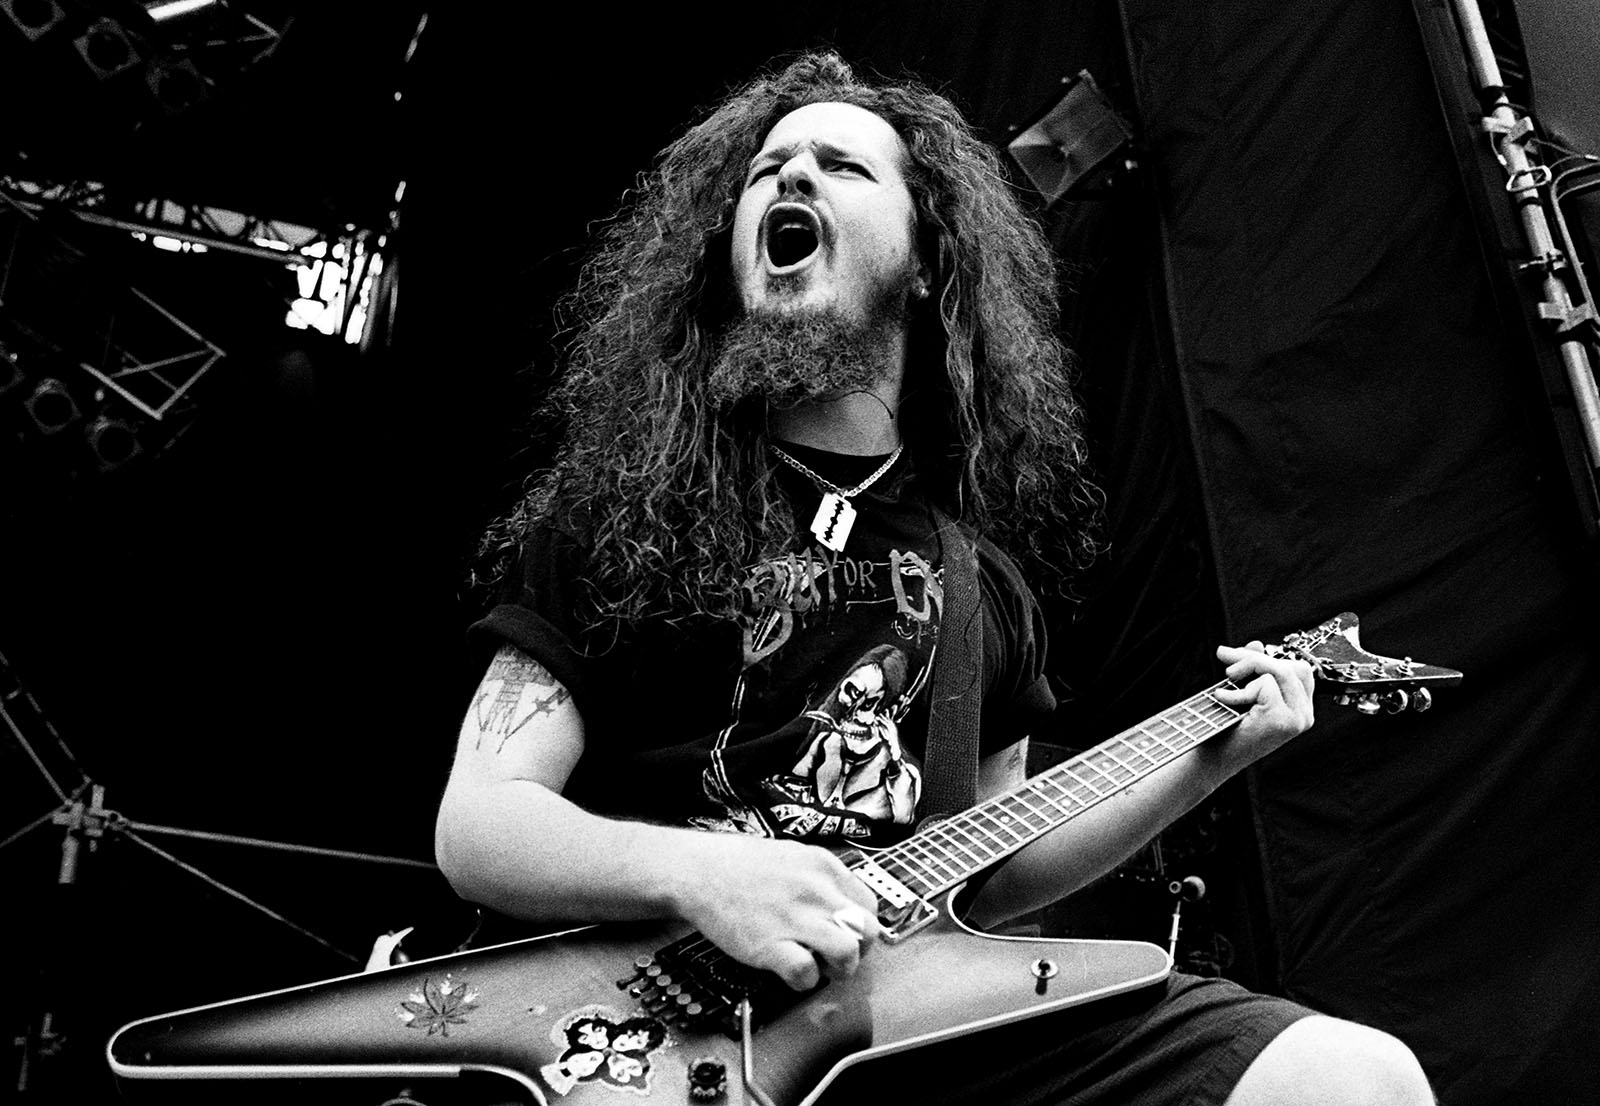 Today Marks 15th Anniversary Of DIMEBAG DARRELL's Death